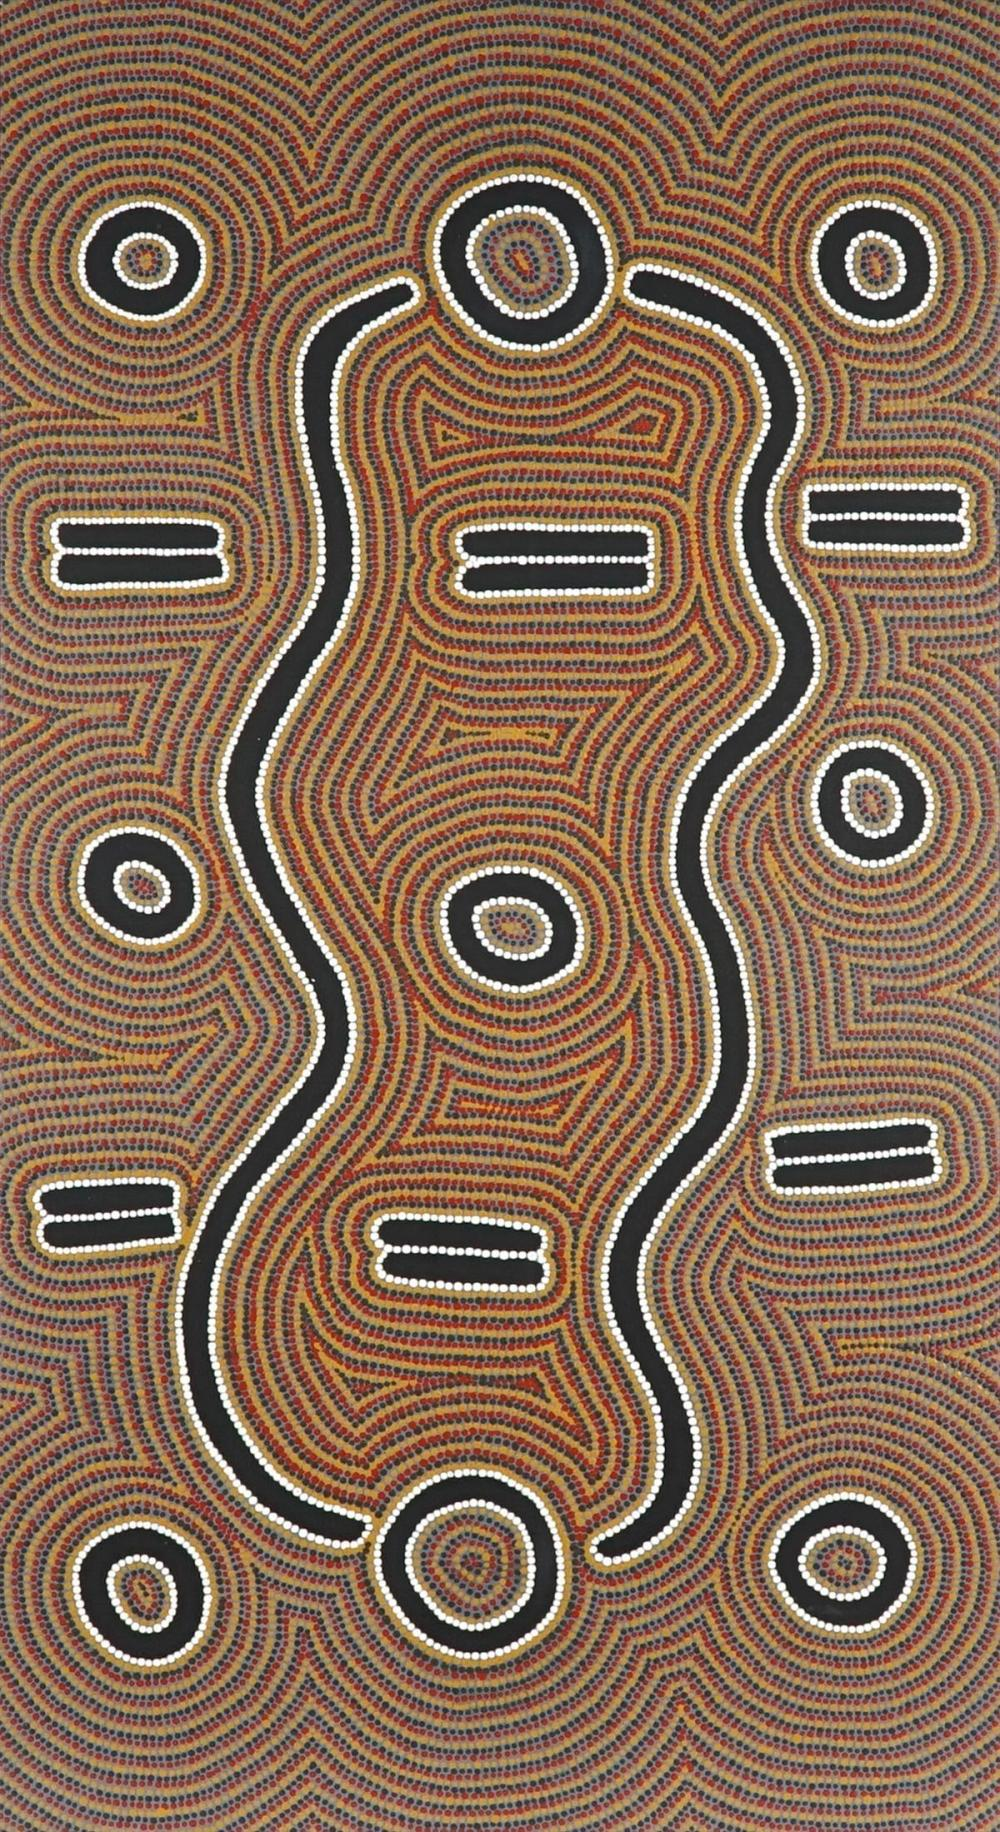 Artist Unknown (Nakamarra) - Snake Dreaming 66 x 126cm (stretched and ready to hang)